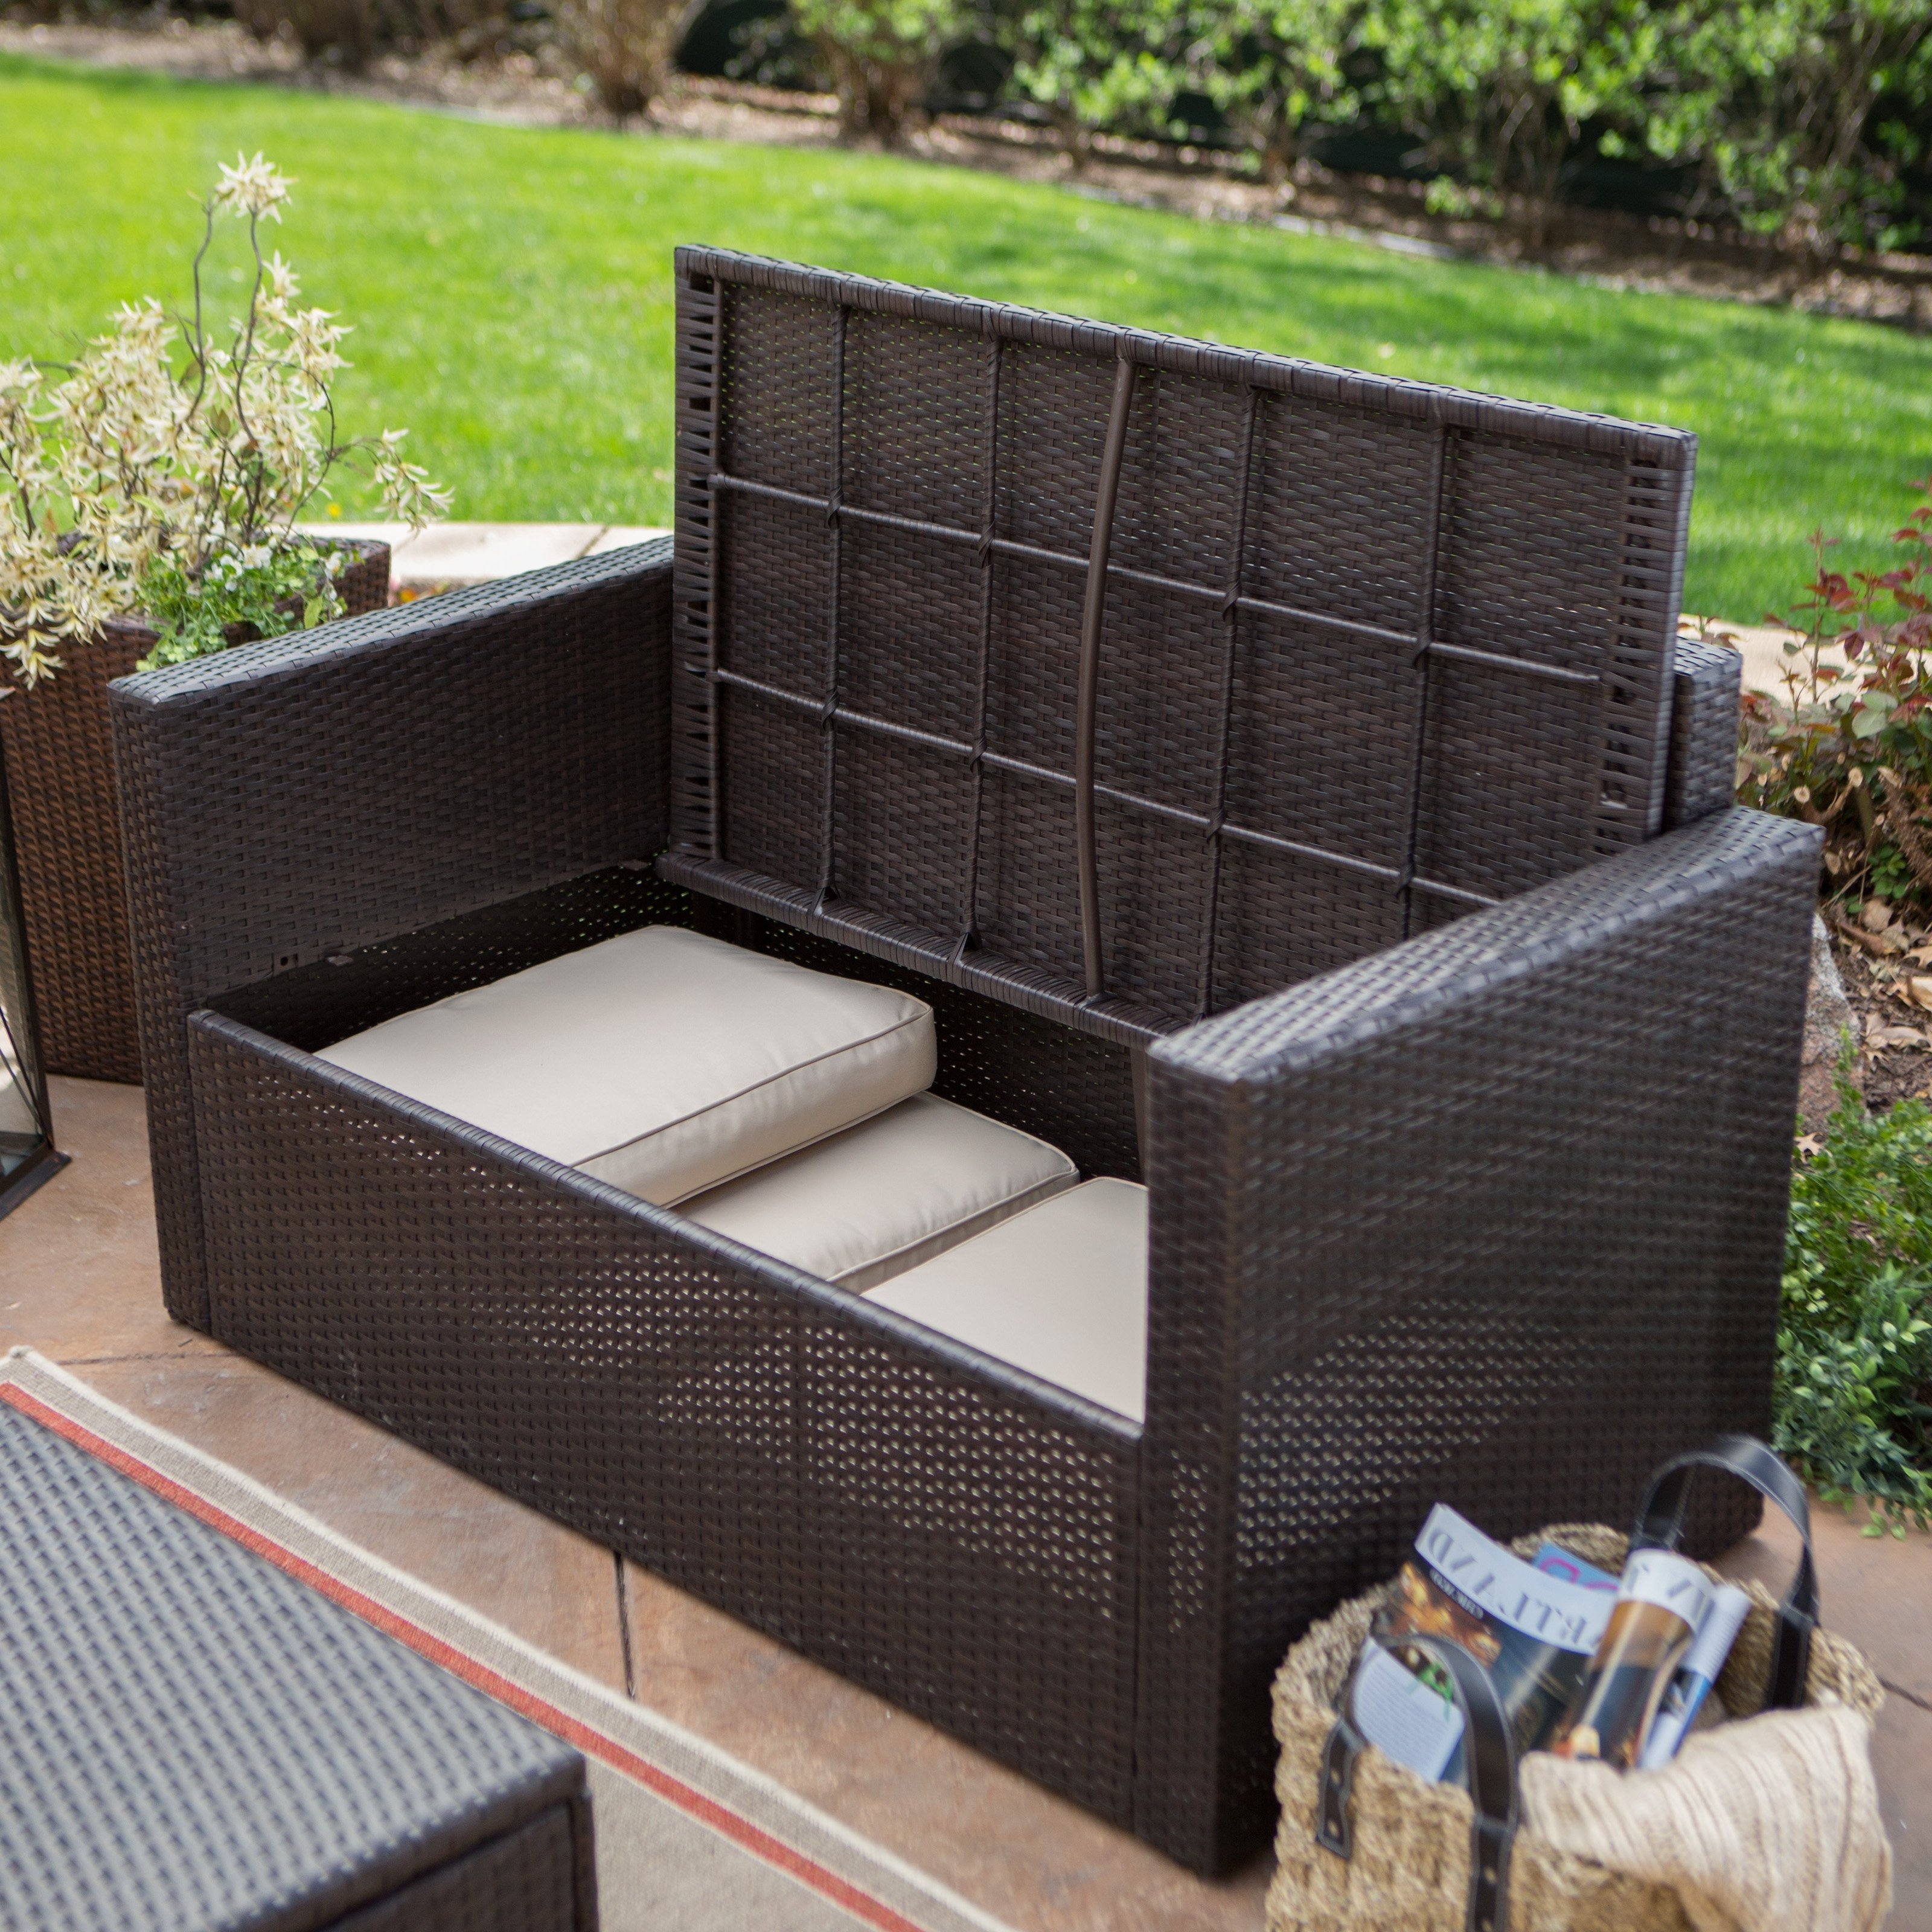 Patio Conversation Sets With Storage For Most Current Coral Coast Berea Outdoor Wicker Storage Loveseat With Cushions (View 3 of 15)